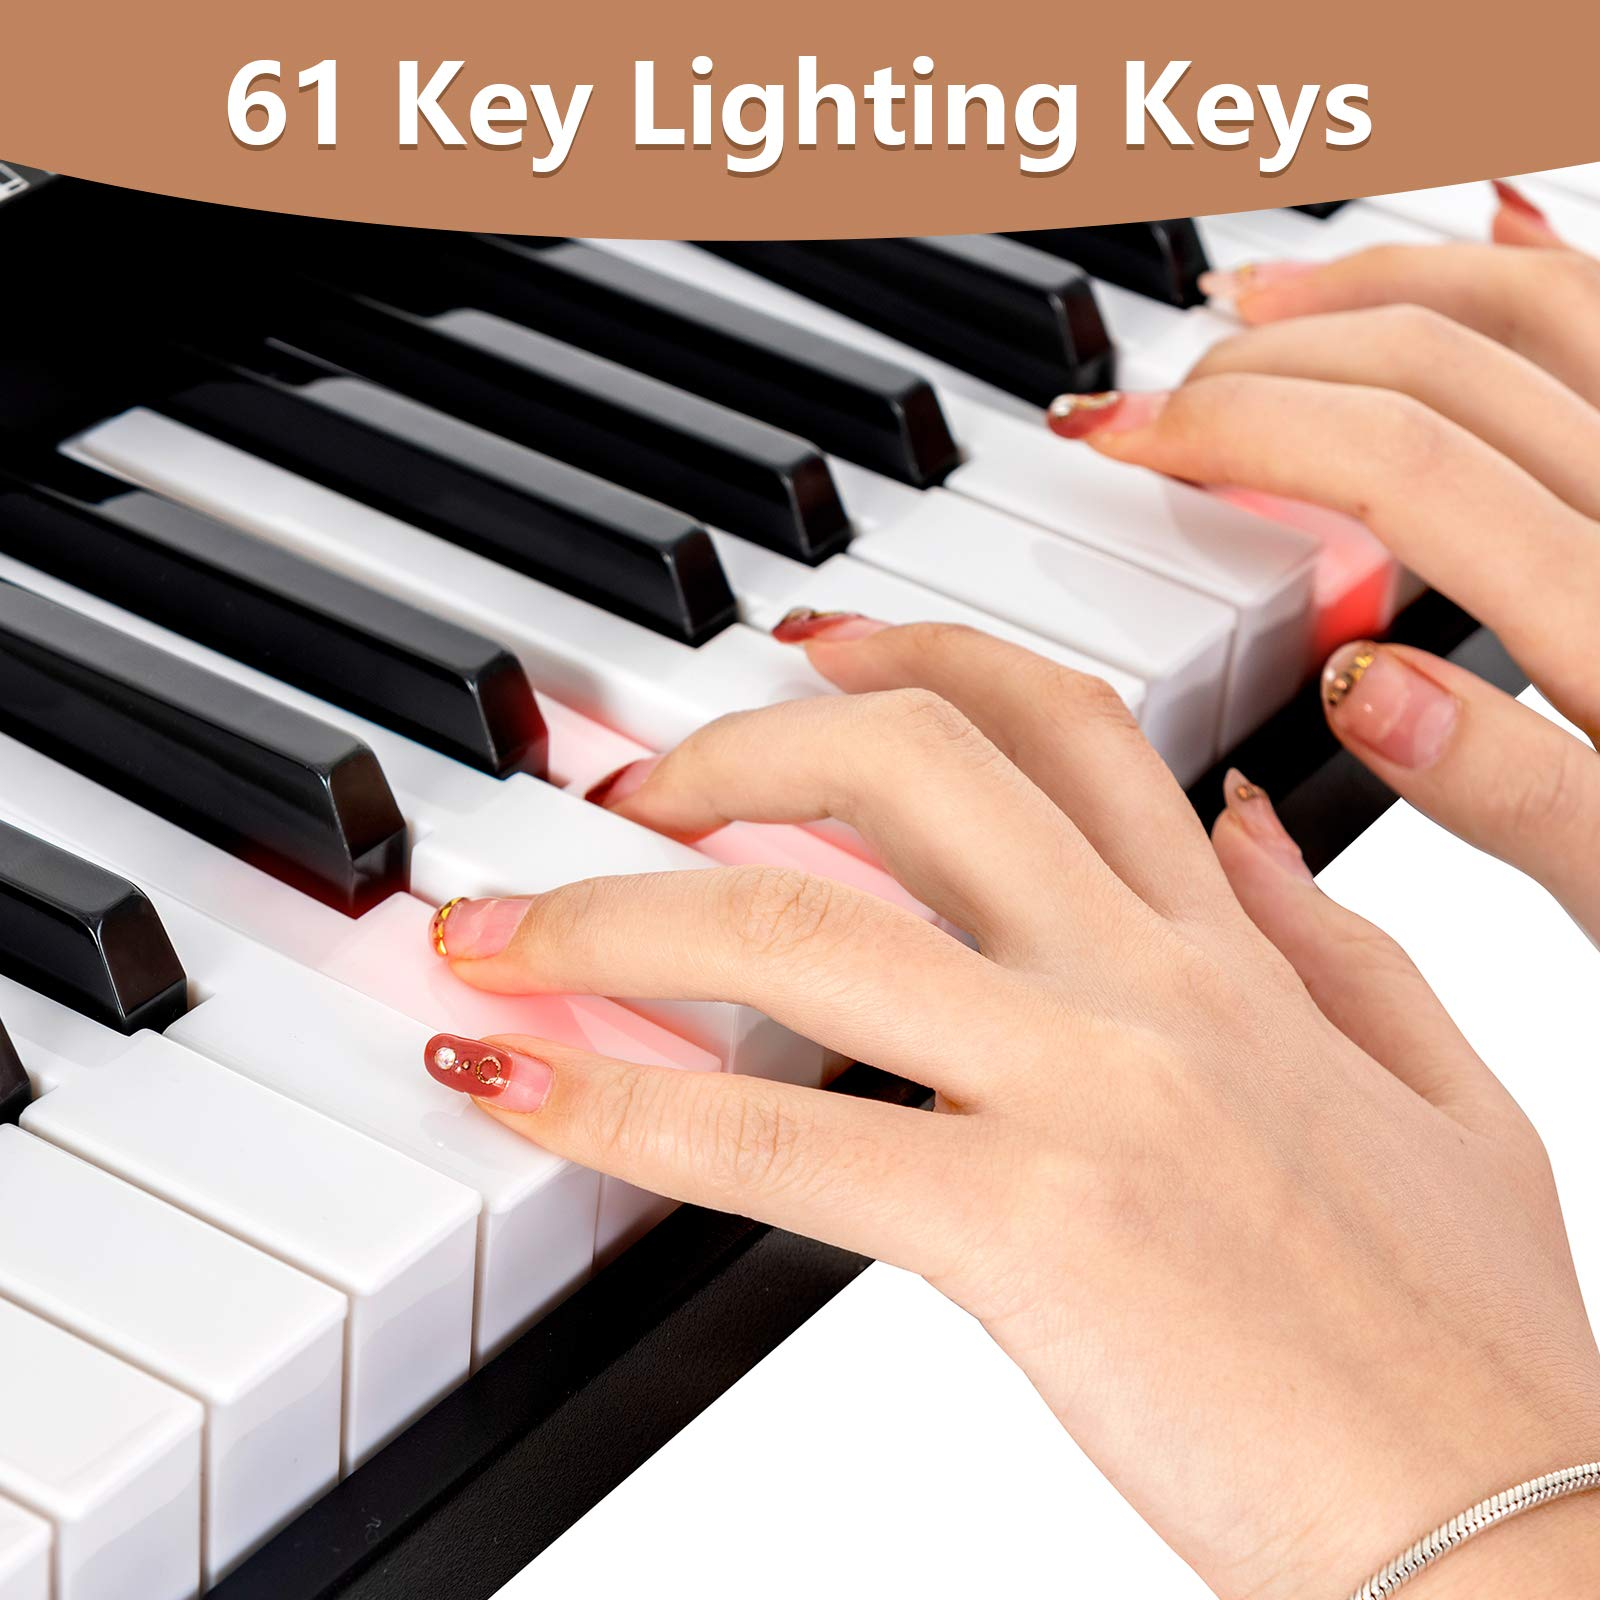 LAGRIMA 61 Key Electric Keyboard Piano w/Light Up Keys for Beginner, Lighted Portable Keyboard w/Music Player Function, Micphone, Power Supply, Music Stand, Black by LAGRIMA (Image #4)